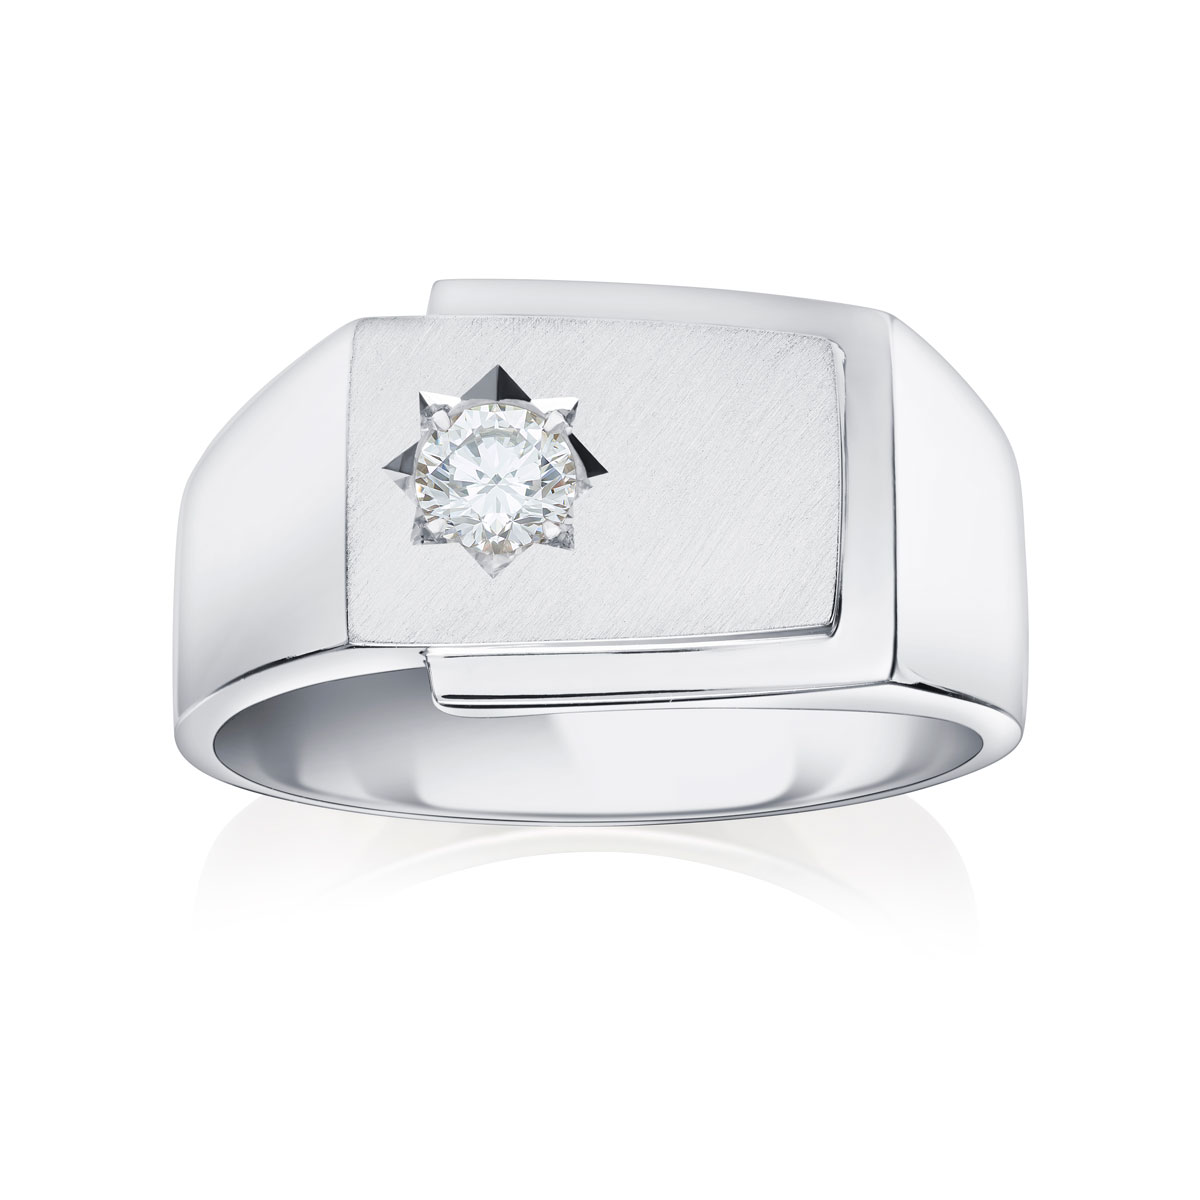 18ct & Diamond Signet Ring